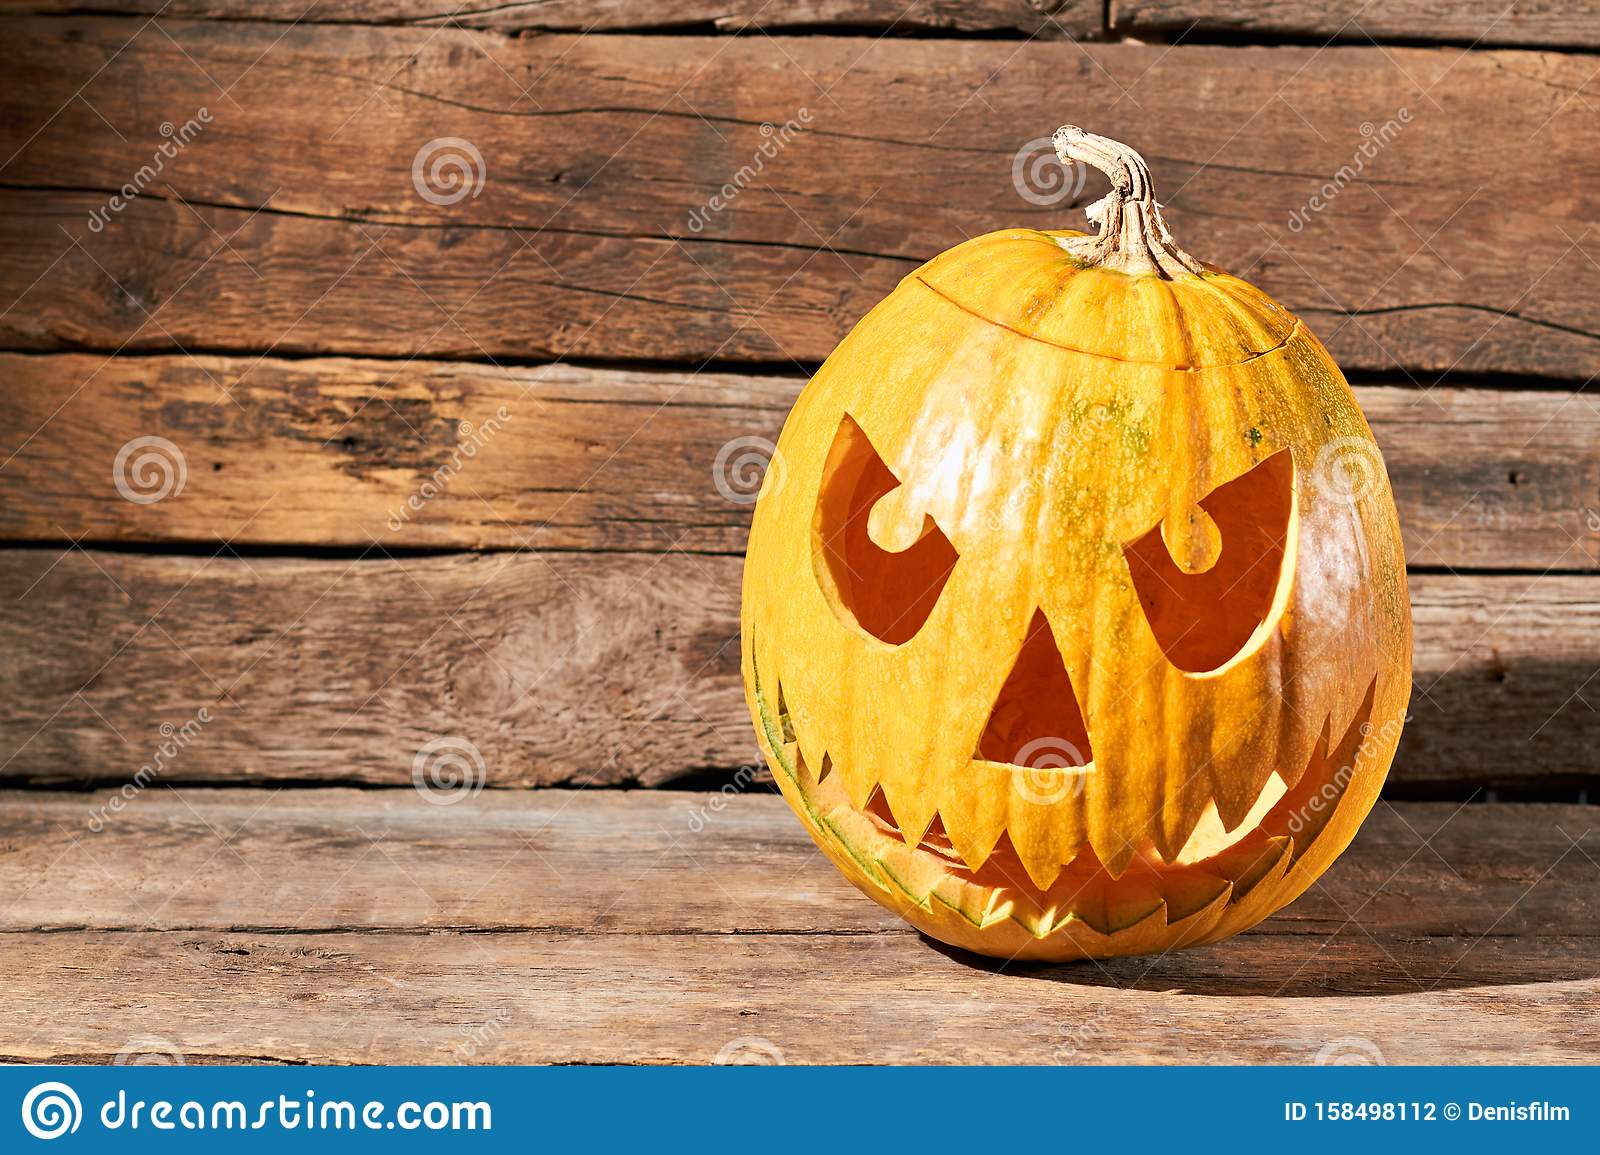 Jack O Lantern Halloween Pumpkin Face Stock Photo Image Of Face Holiday 158498112